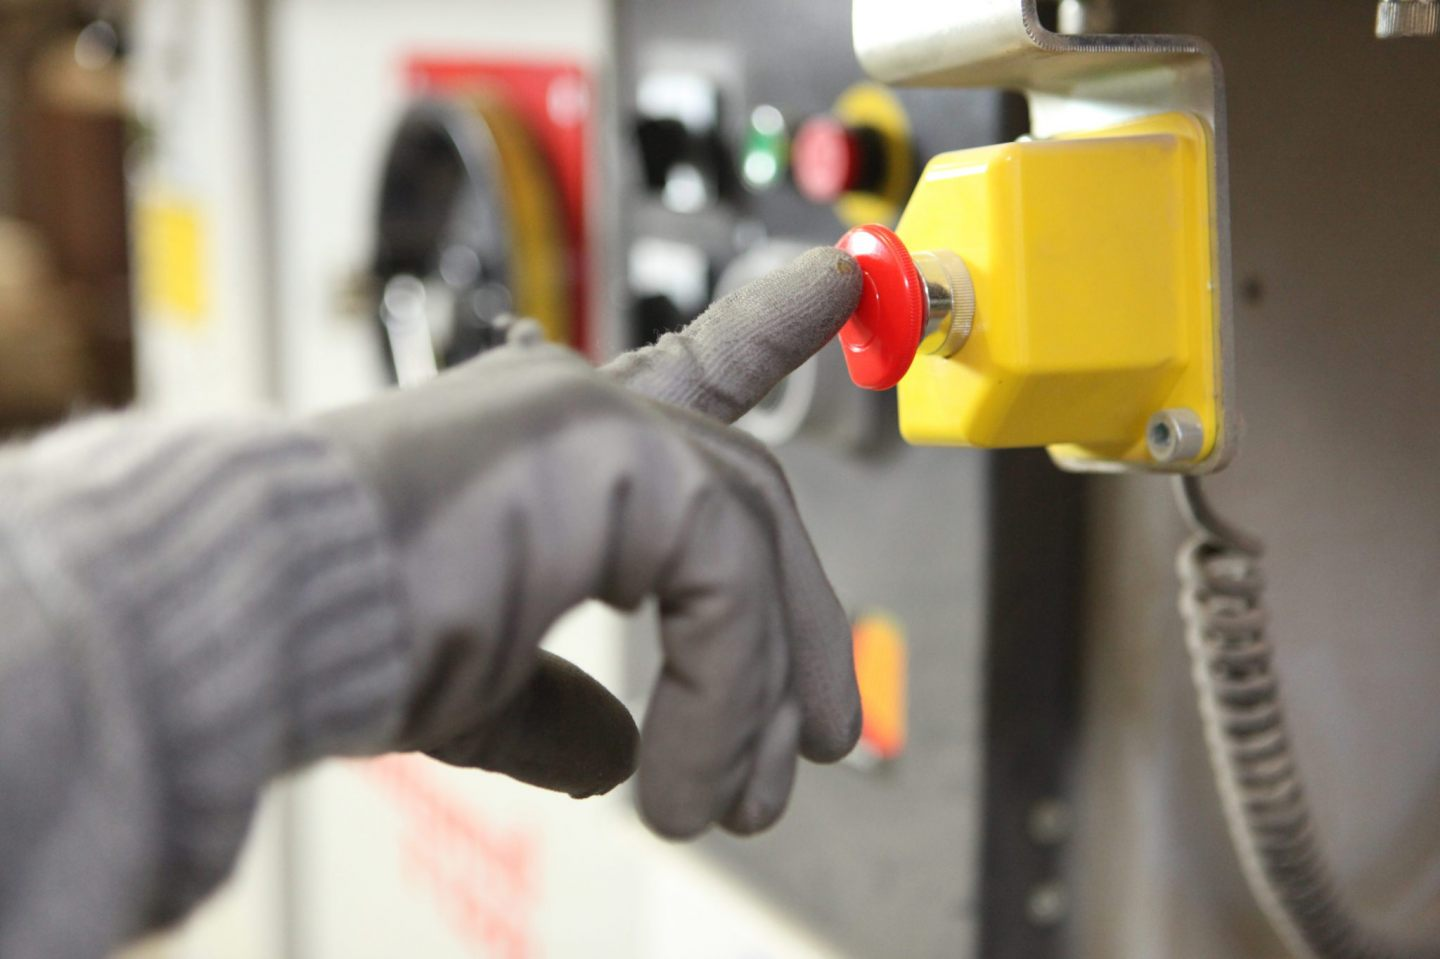 Factory worker pushing a button